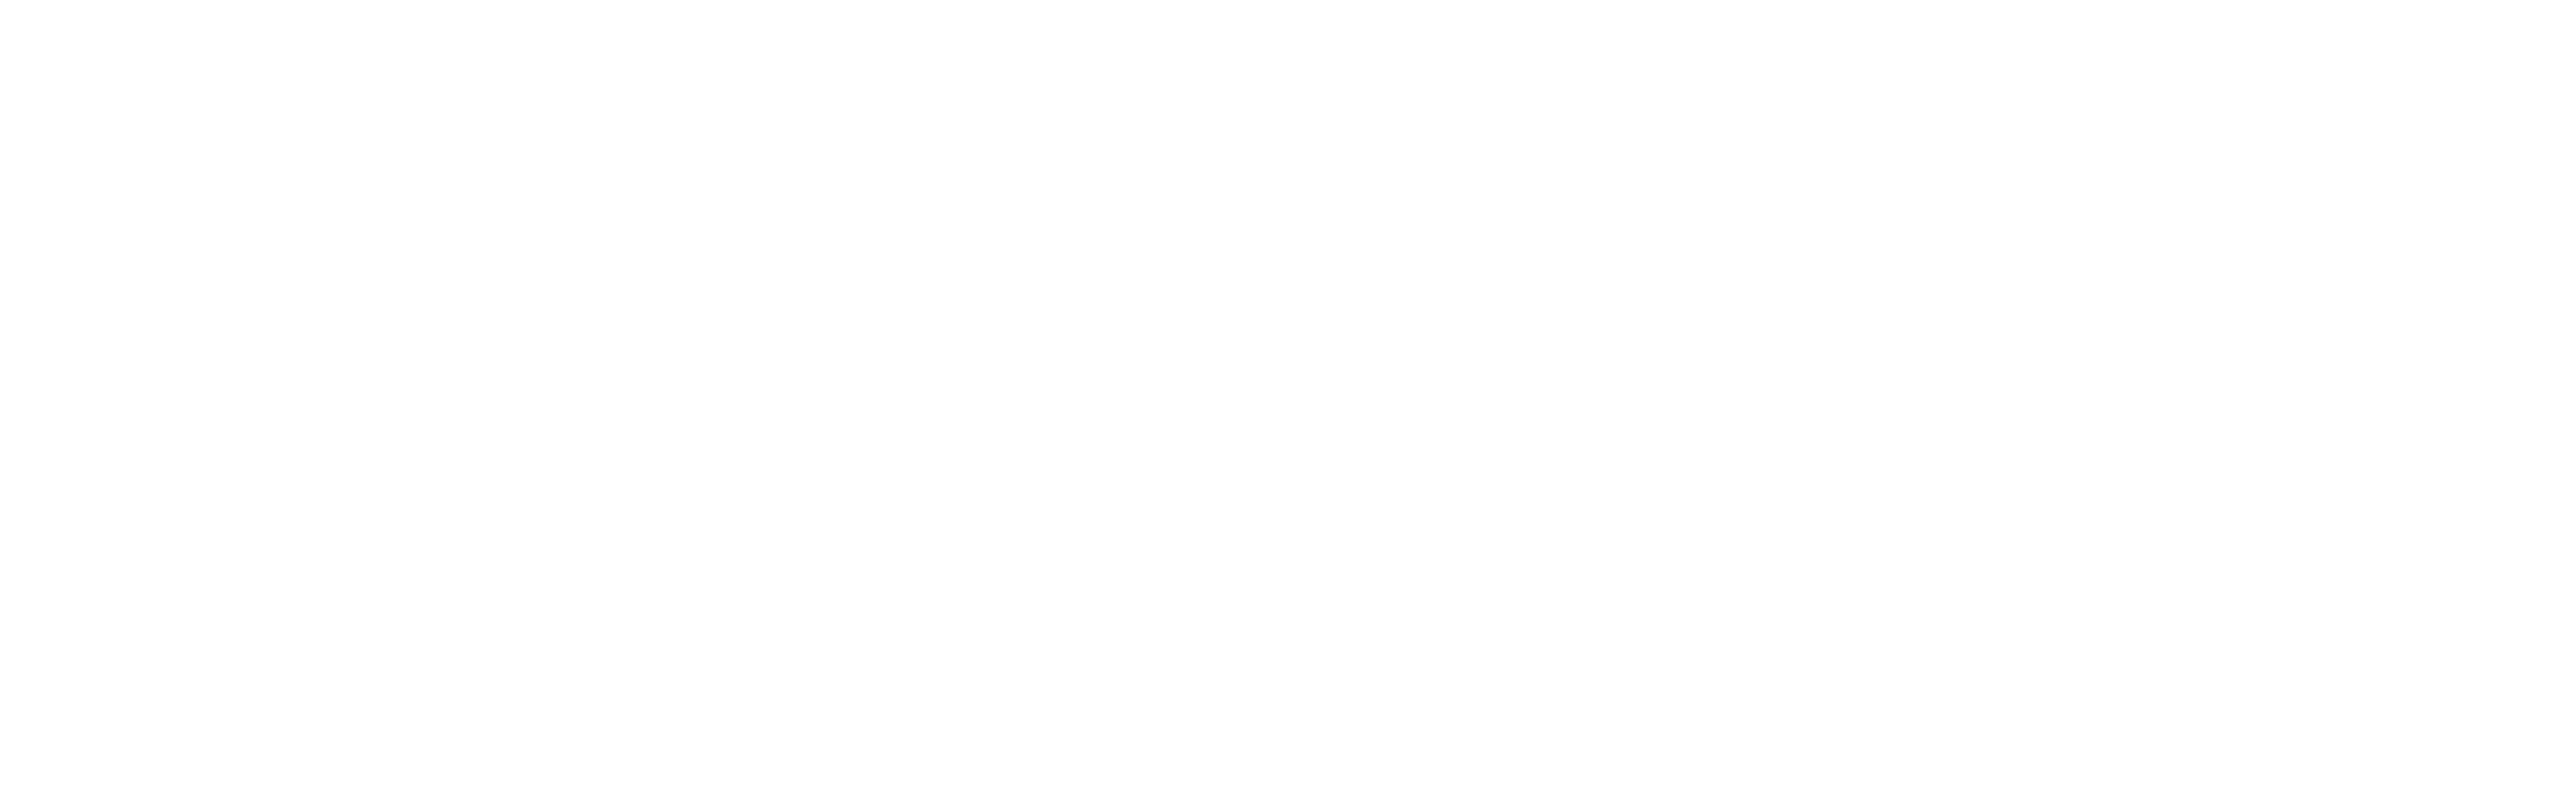 curate.png